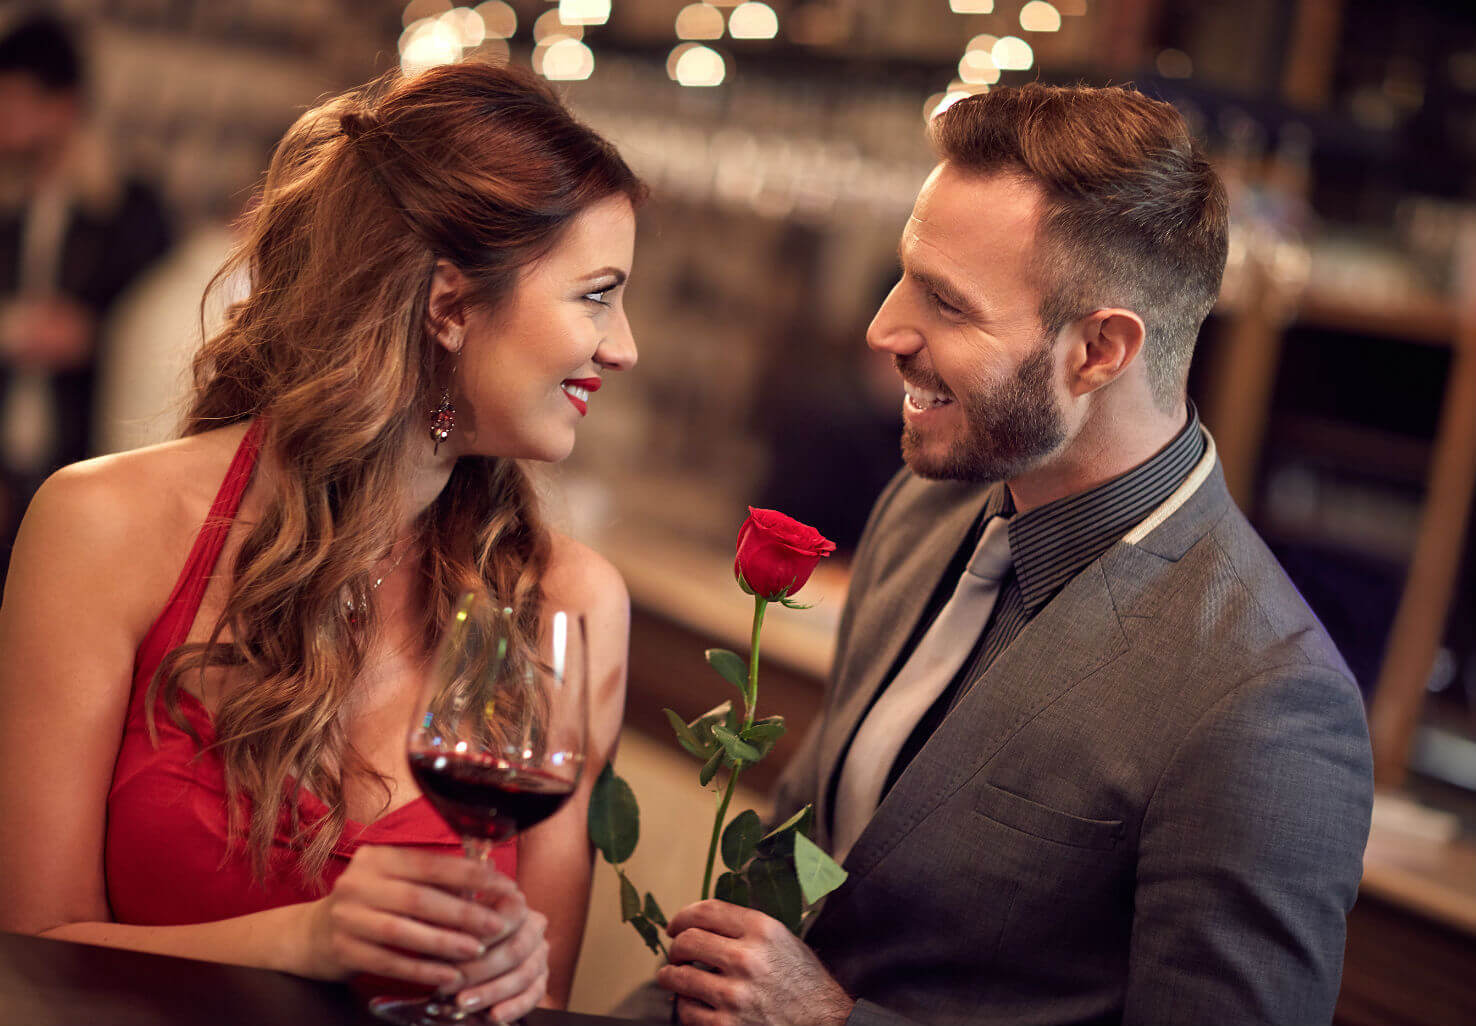 Man presents woman with rose while she holds wine